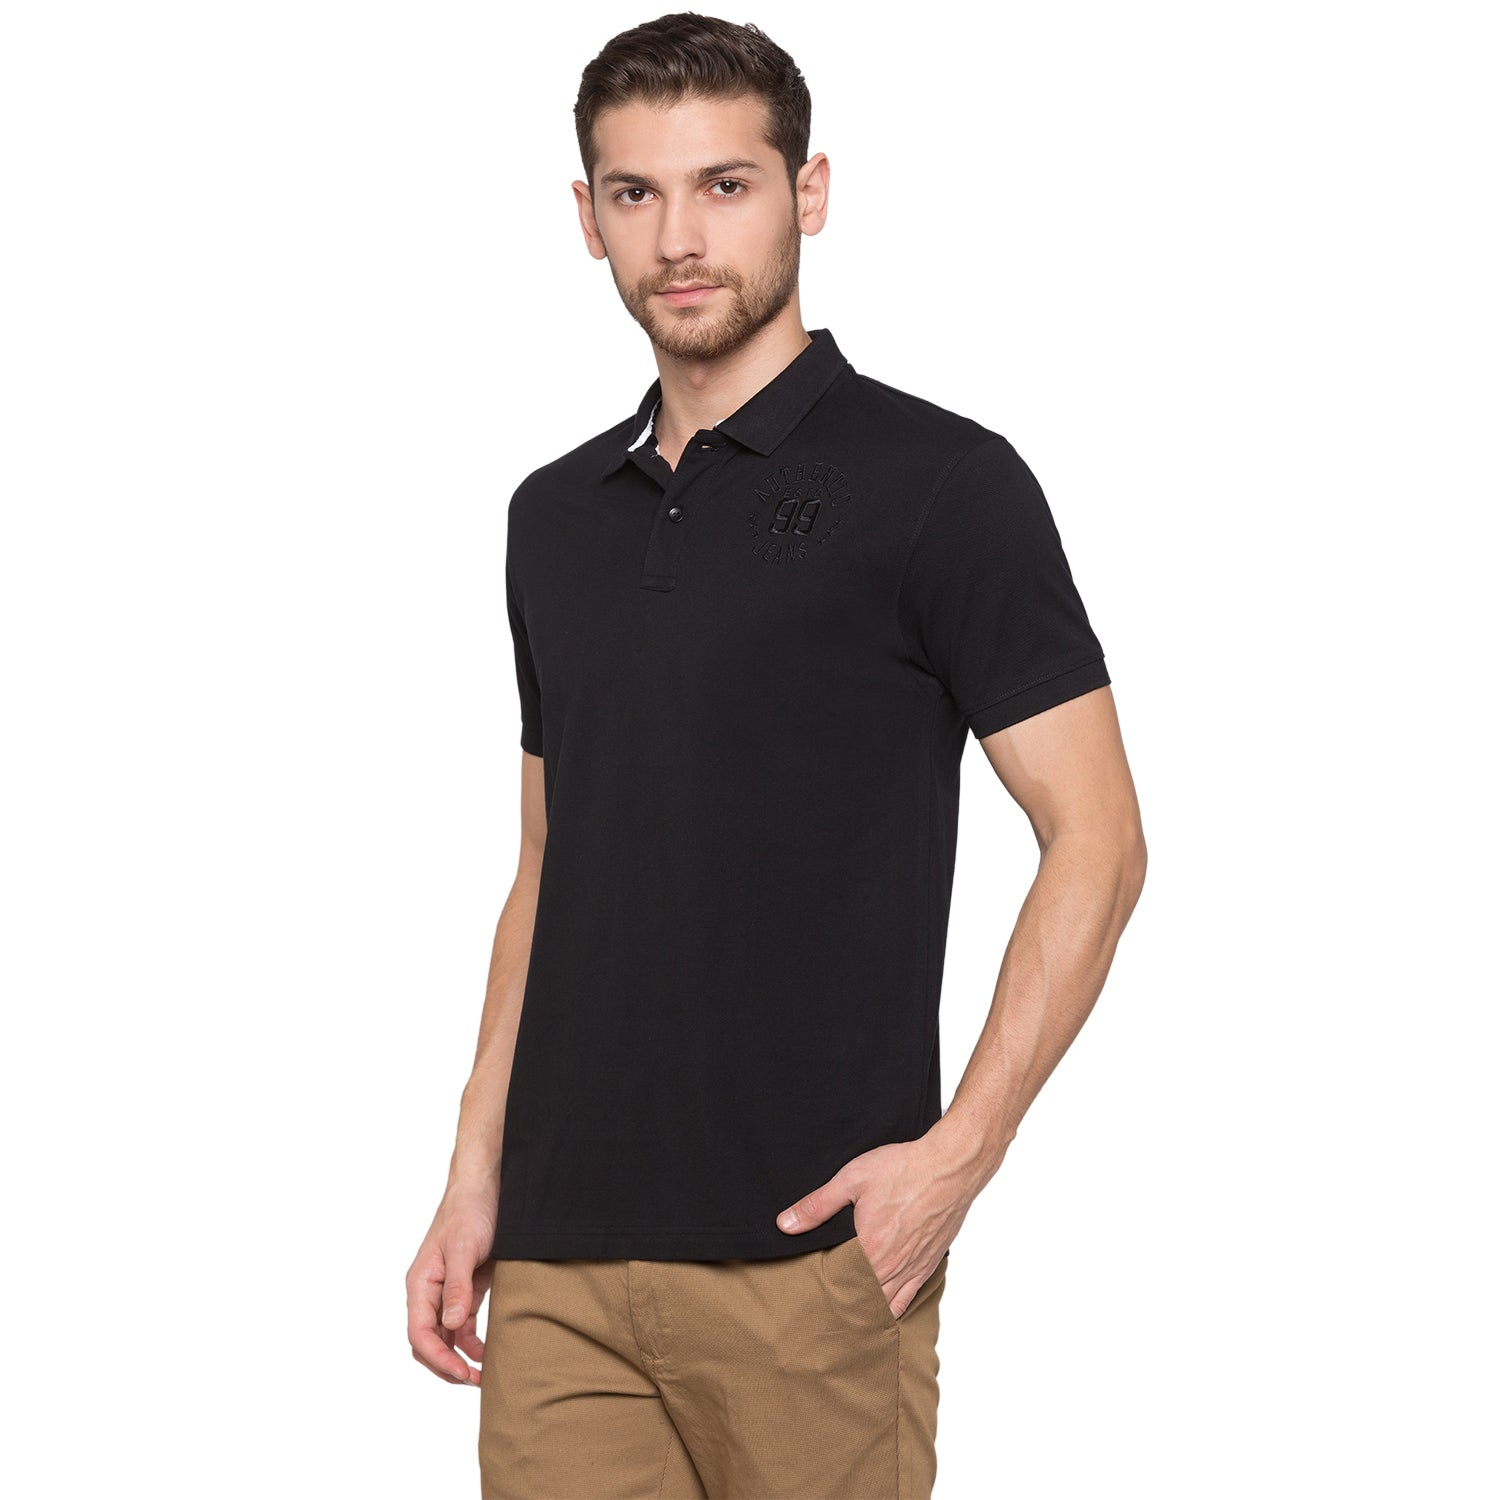 Globus Black Solid Polo T-Shirt2